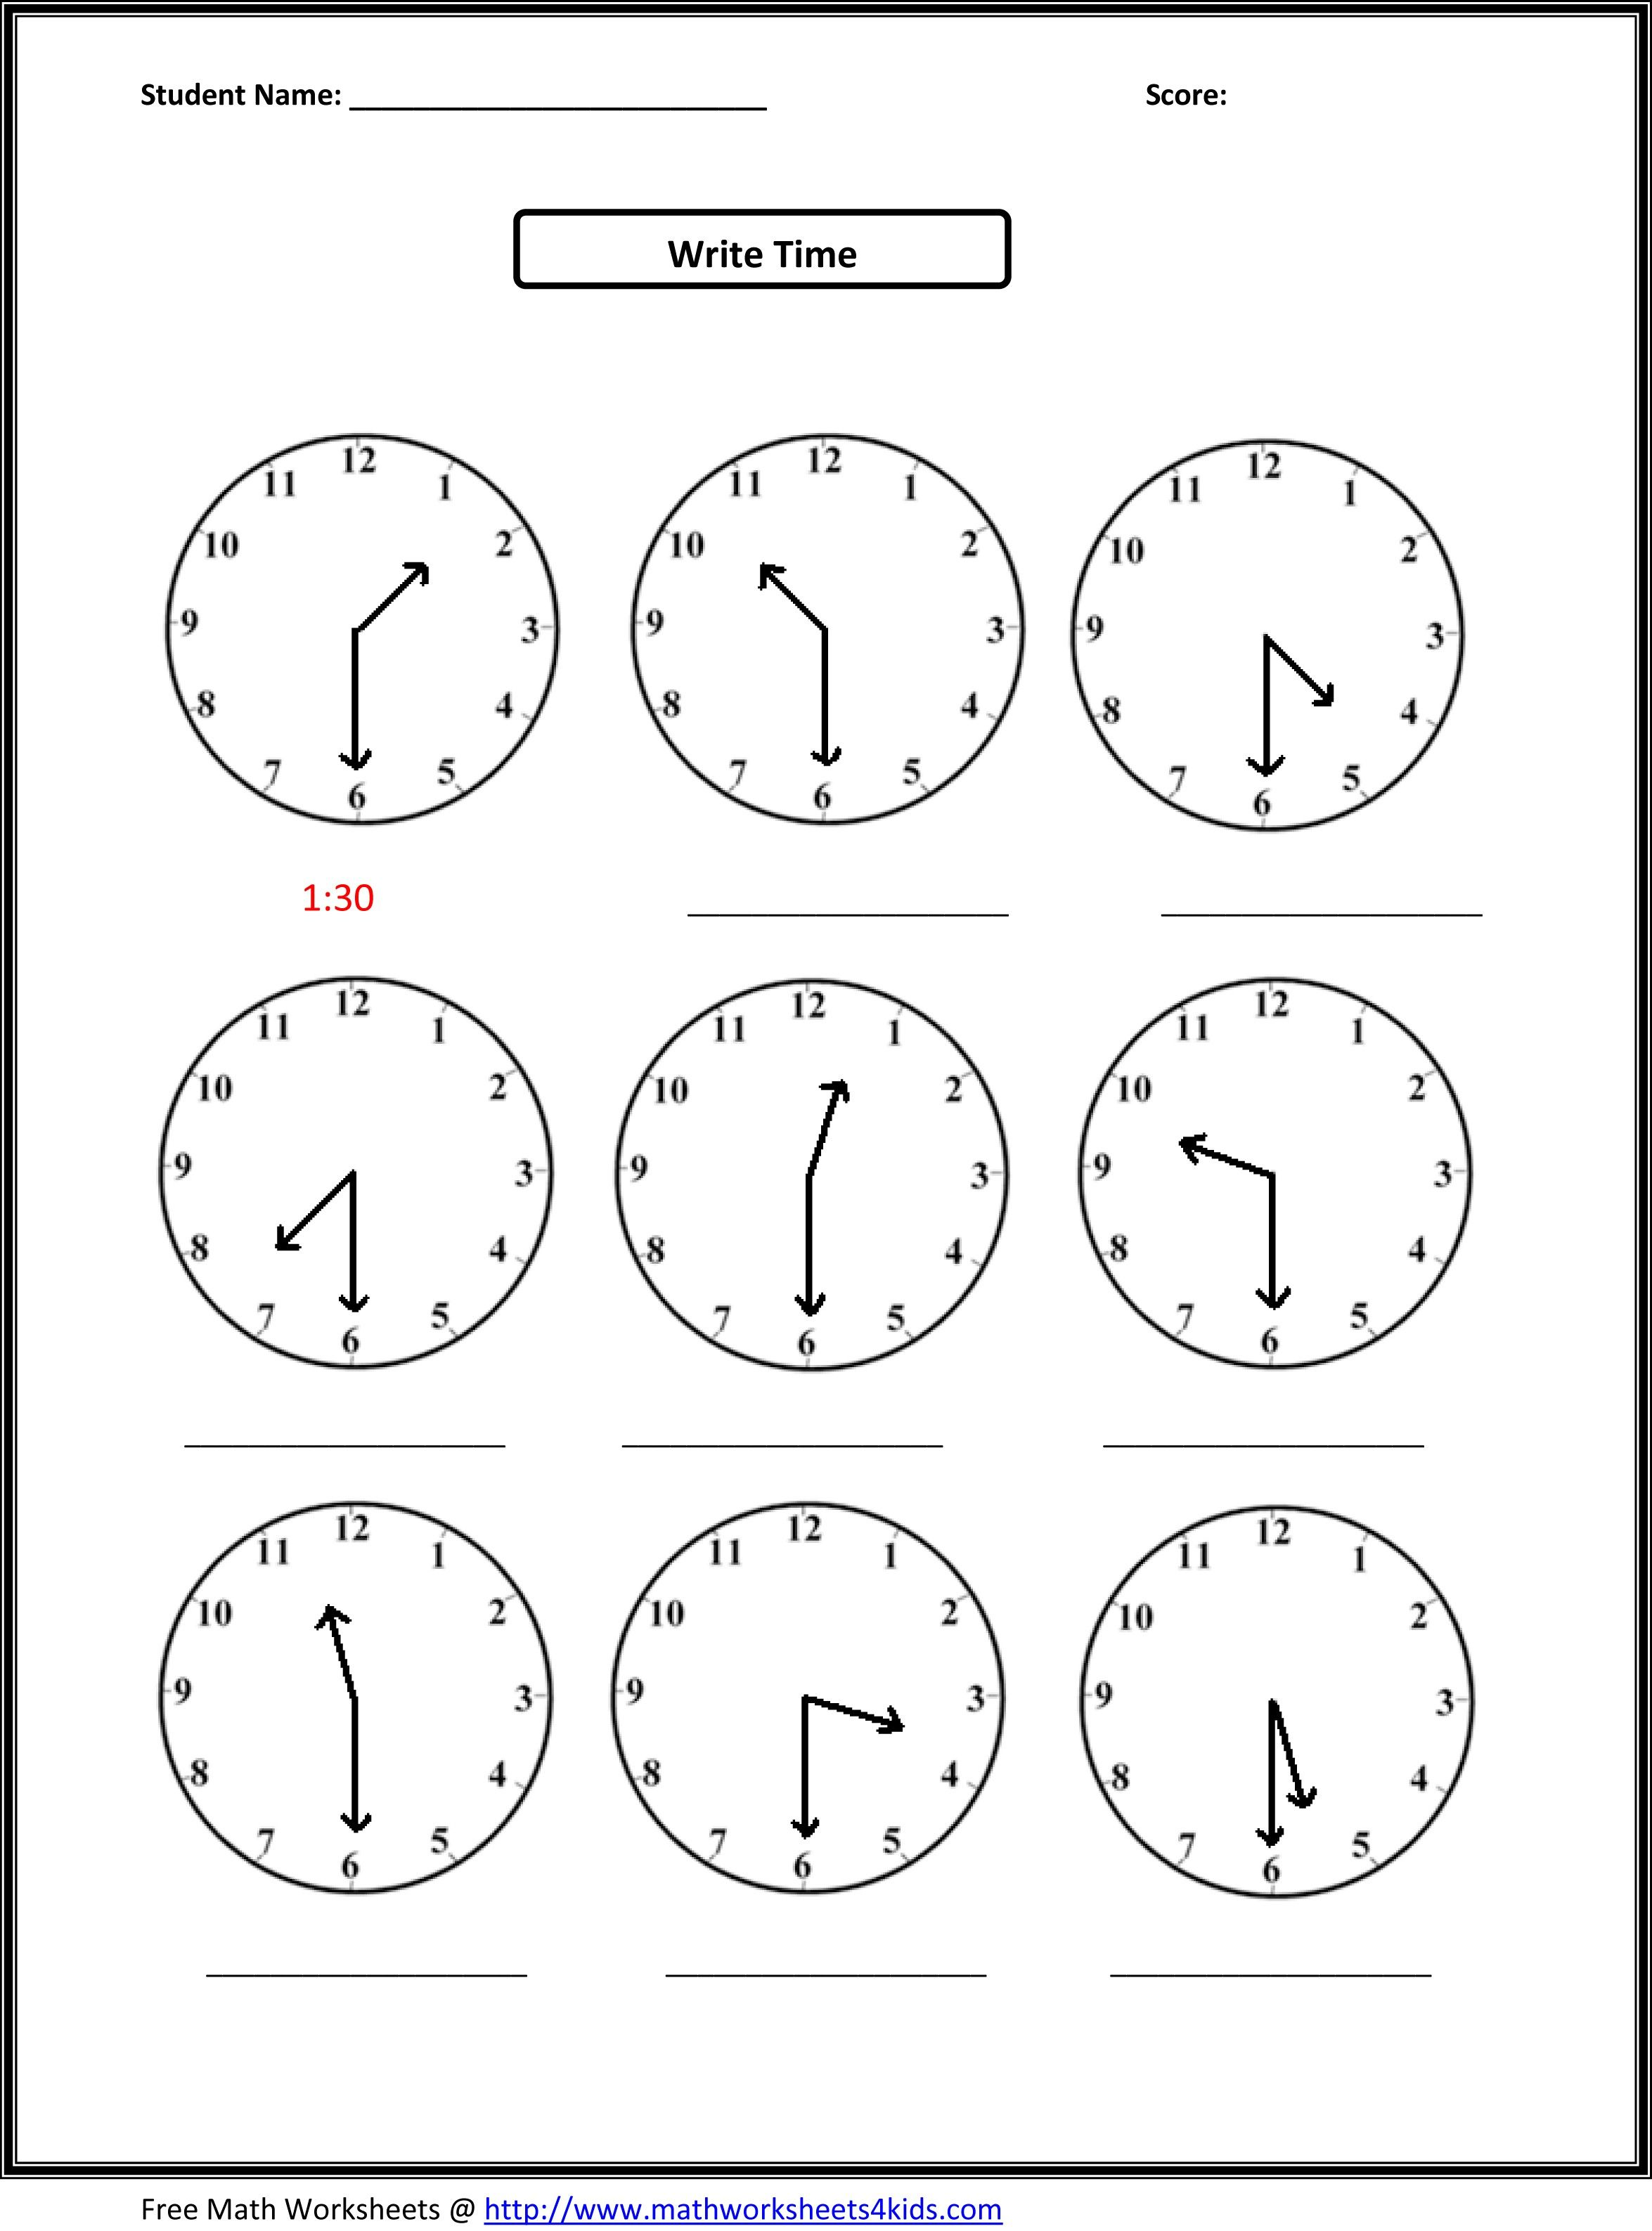 Worksheets Free Math Printable Worksheets 2nd grade free worksheets math timemeasurement math